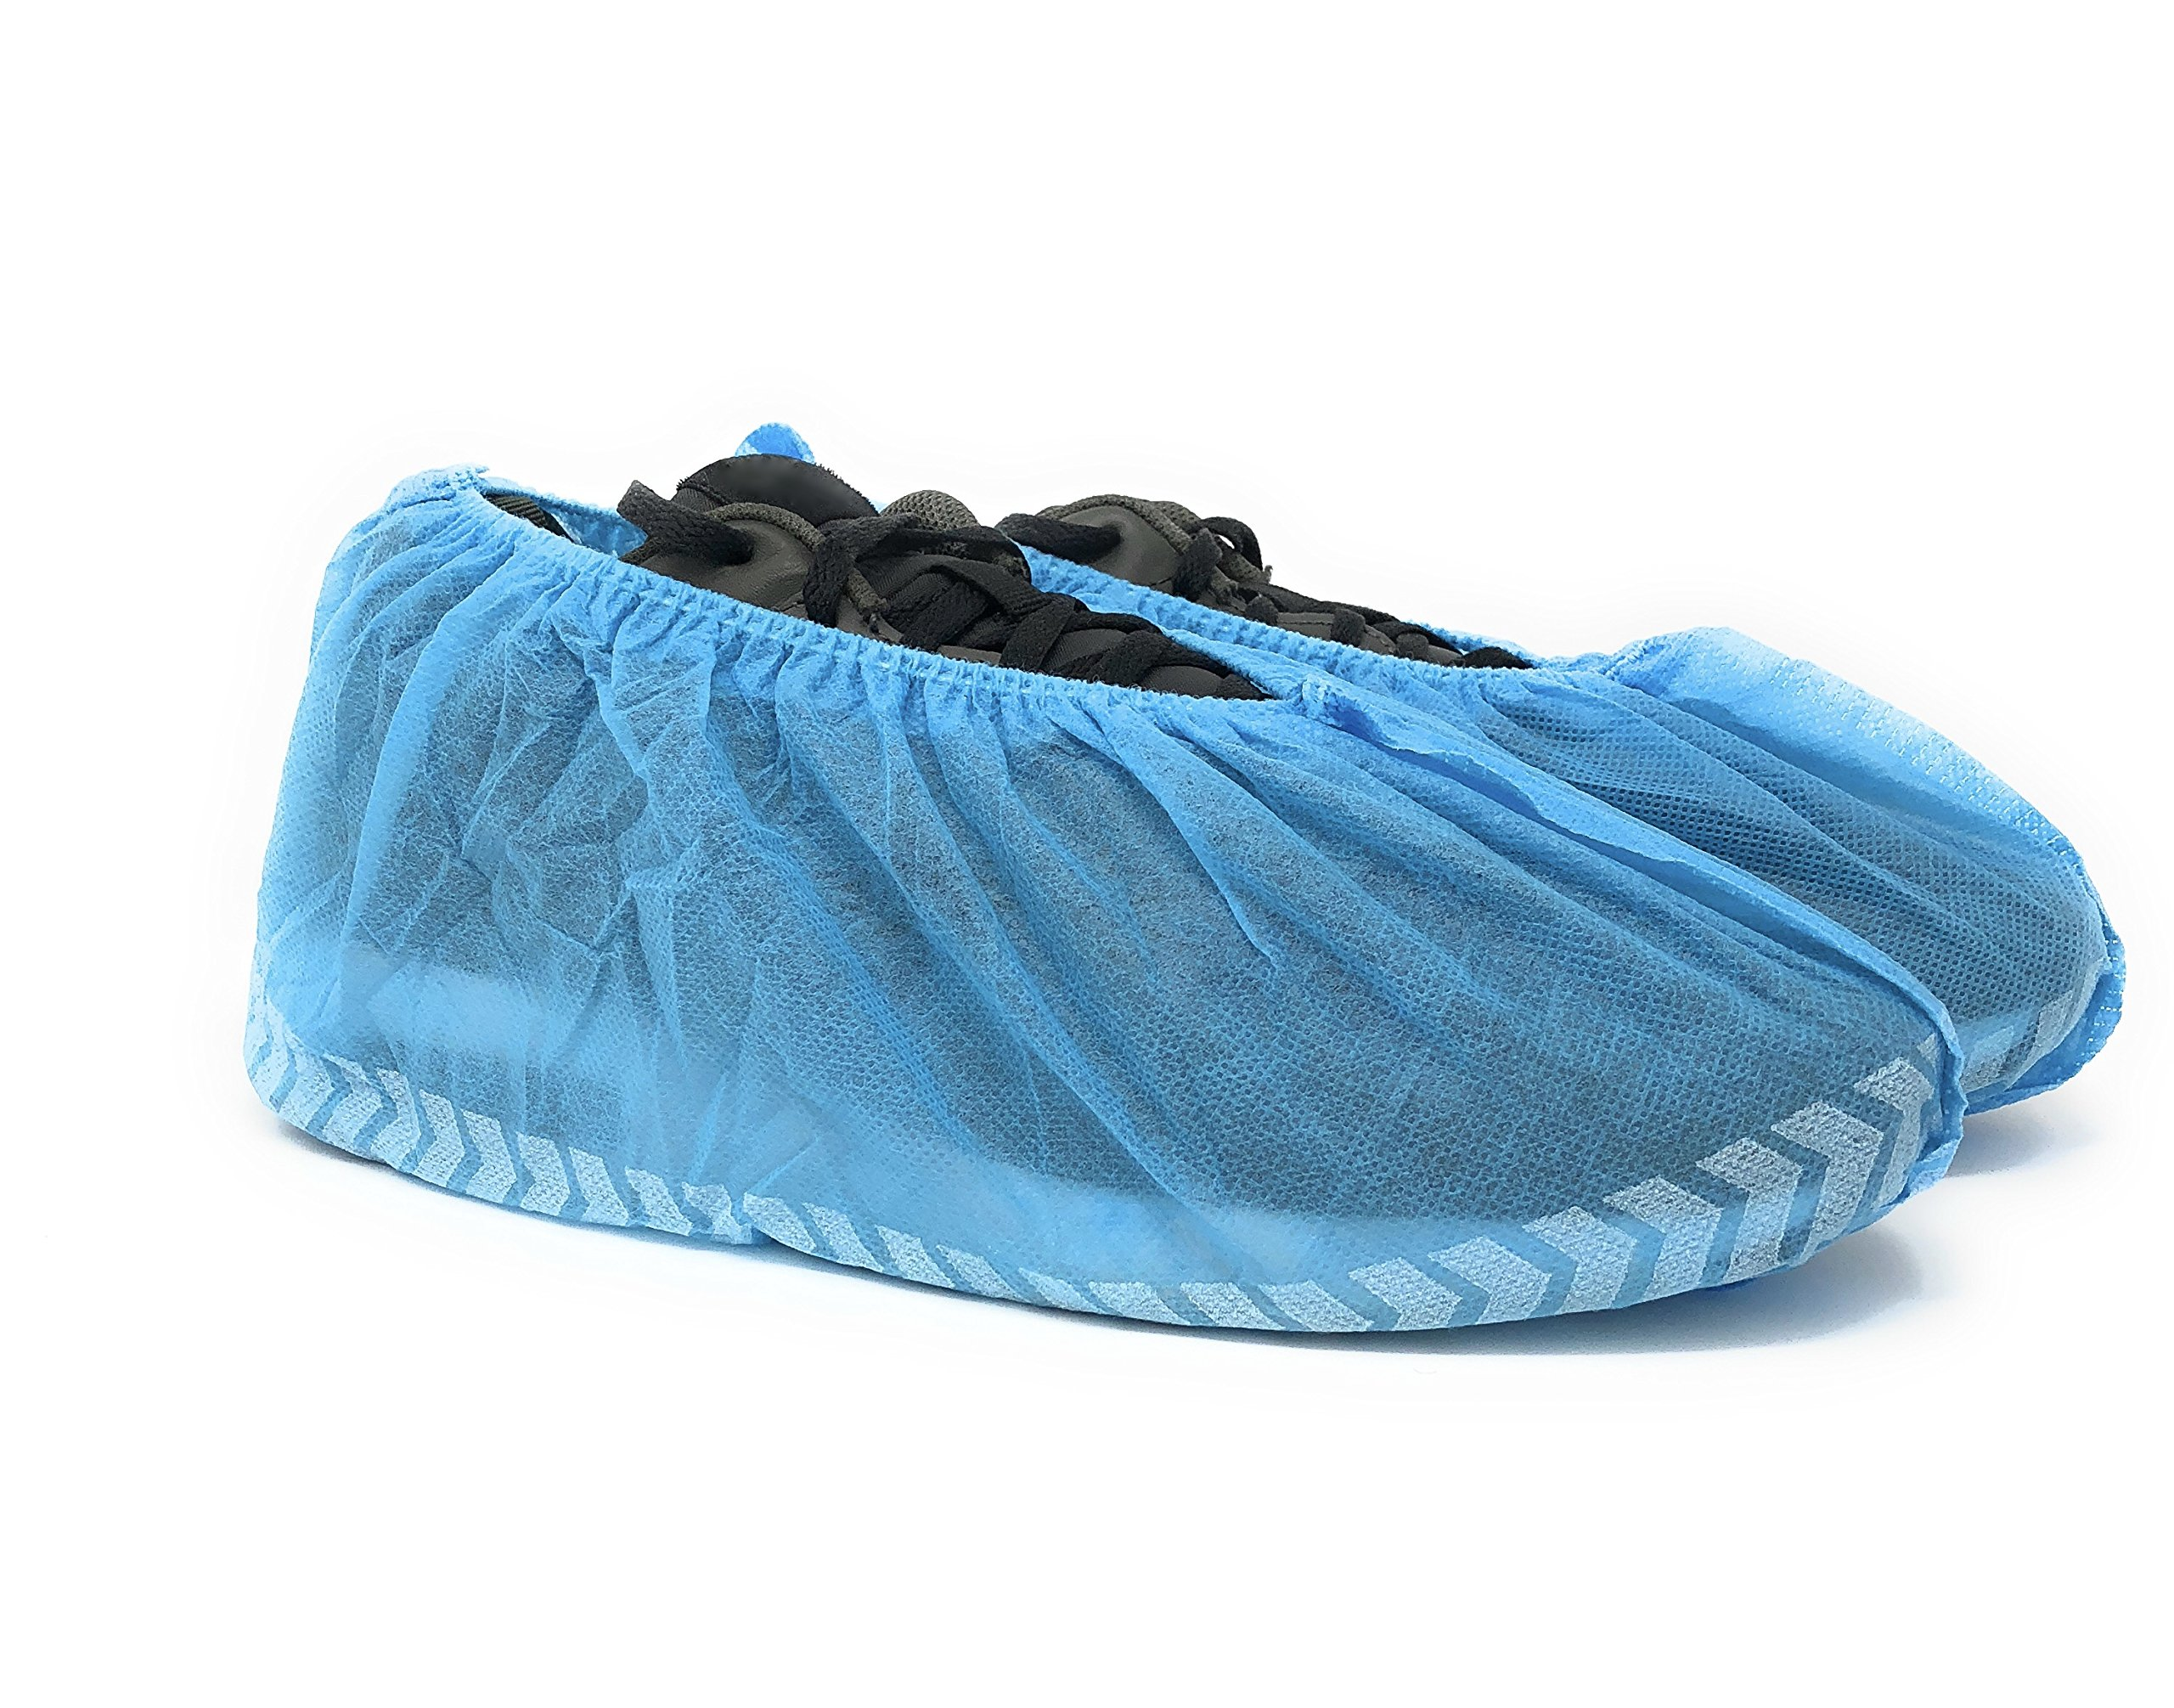 SafeBasics Non Skid Disposable Shoe Covers, Durable, Water Resistant, One Size Fits Most (100)